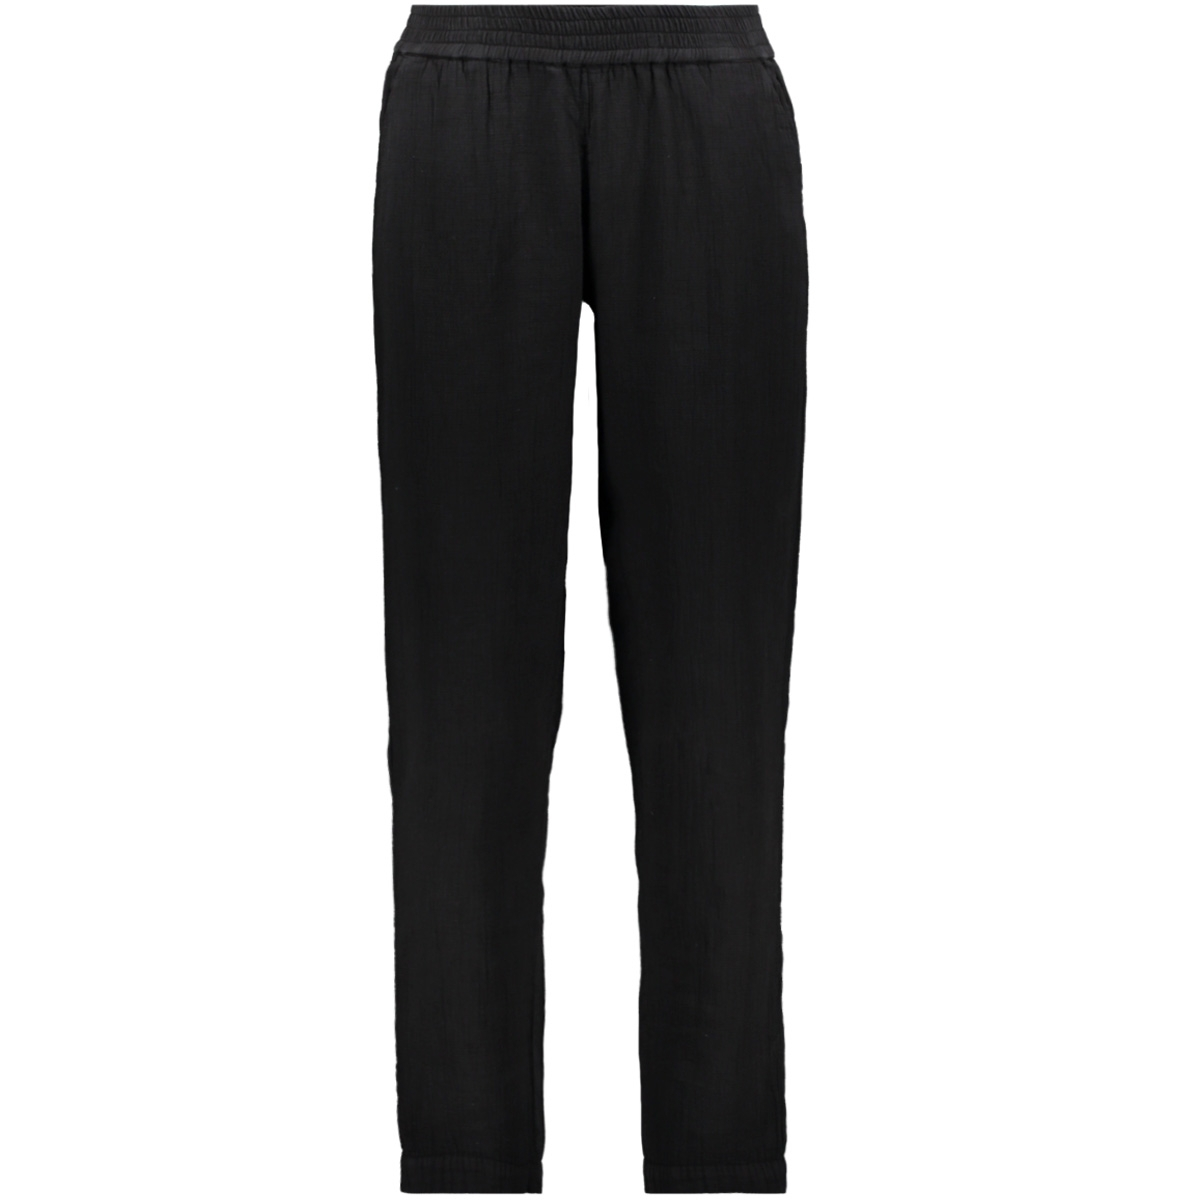 20 058 9101 10 days broek black